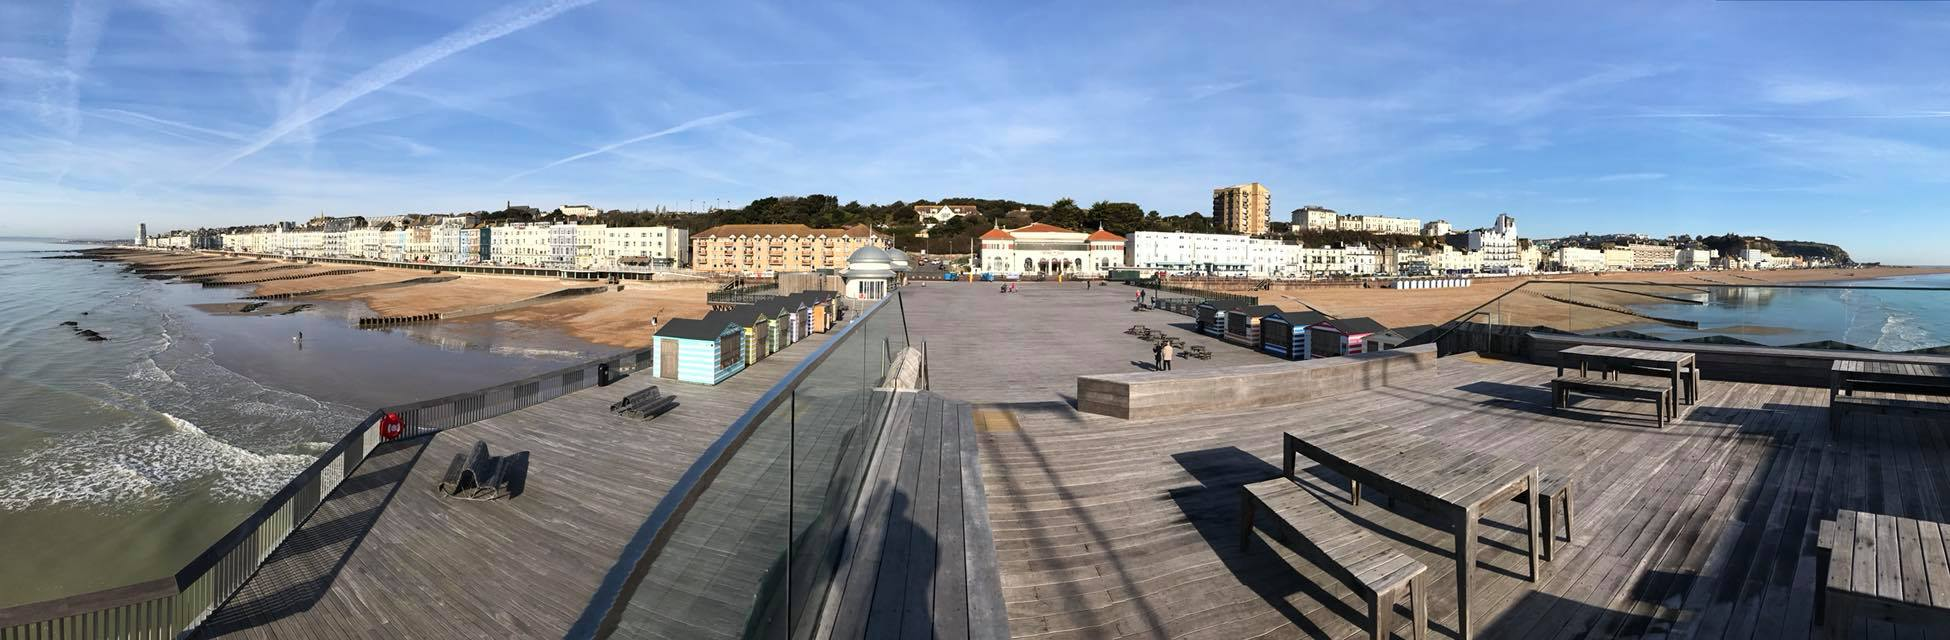 A Roman Forum for the 21st century – eat drink and be merry is the recipe for future of the pier